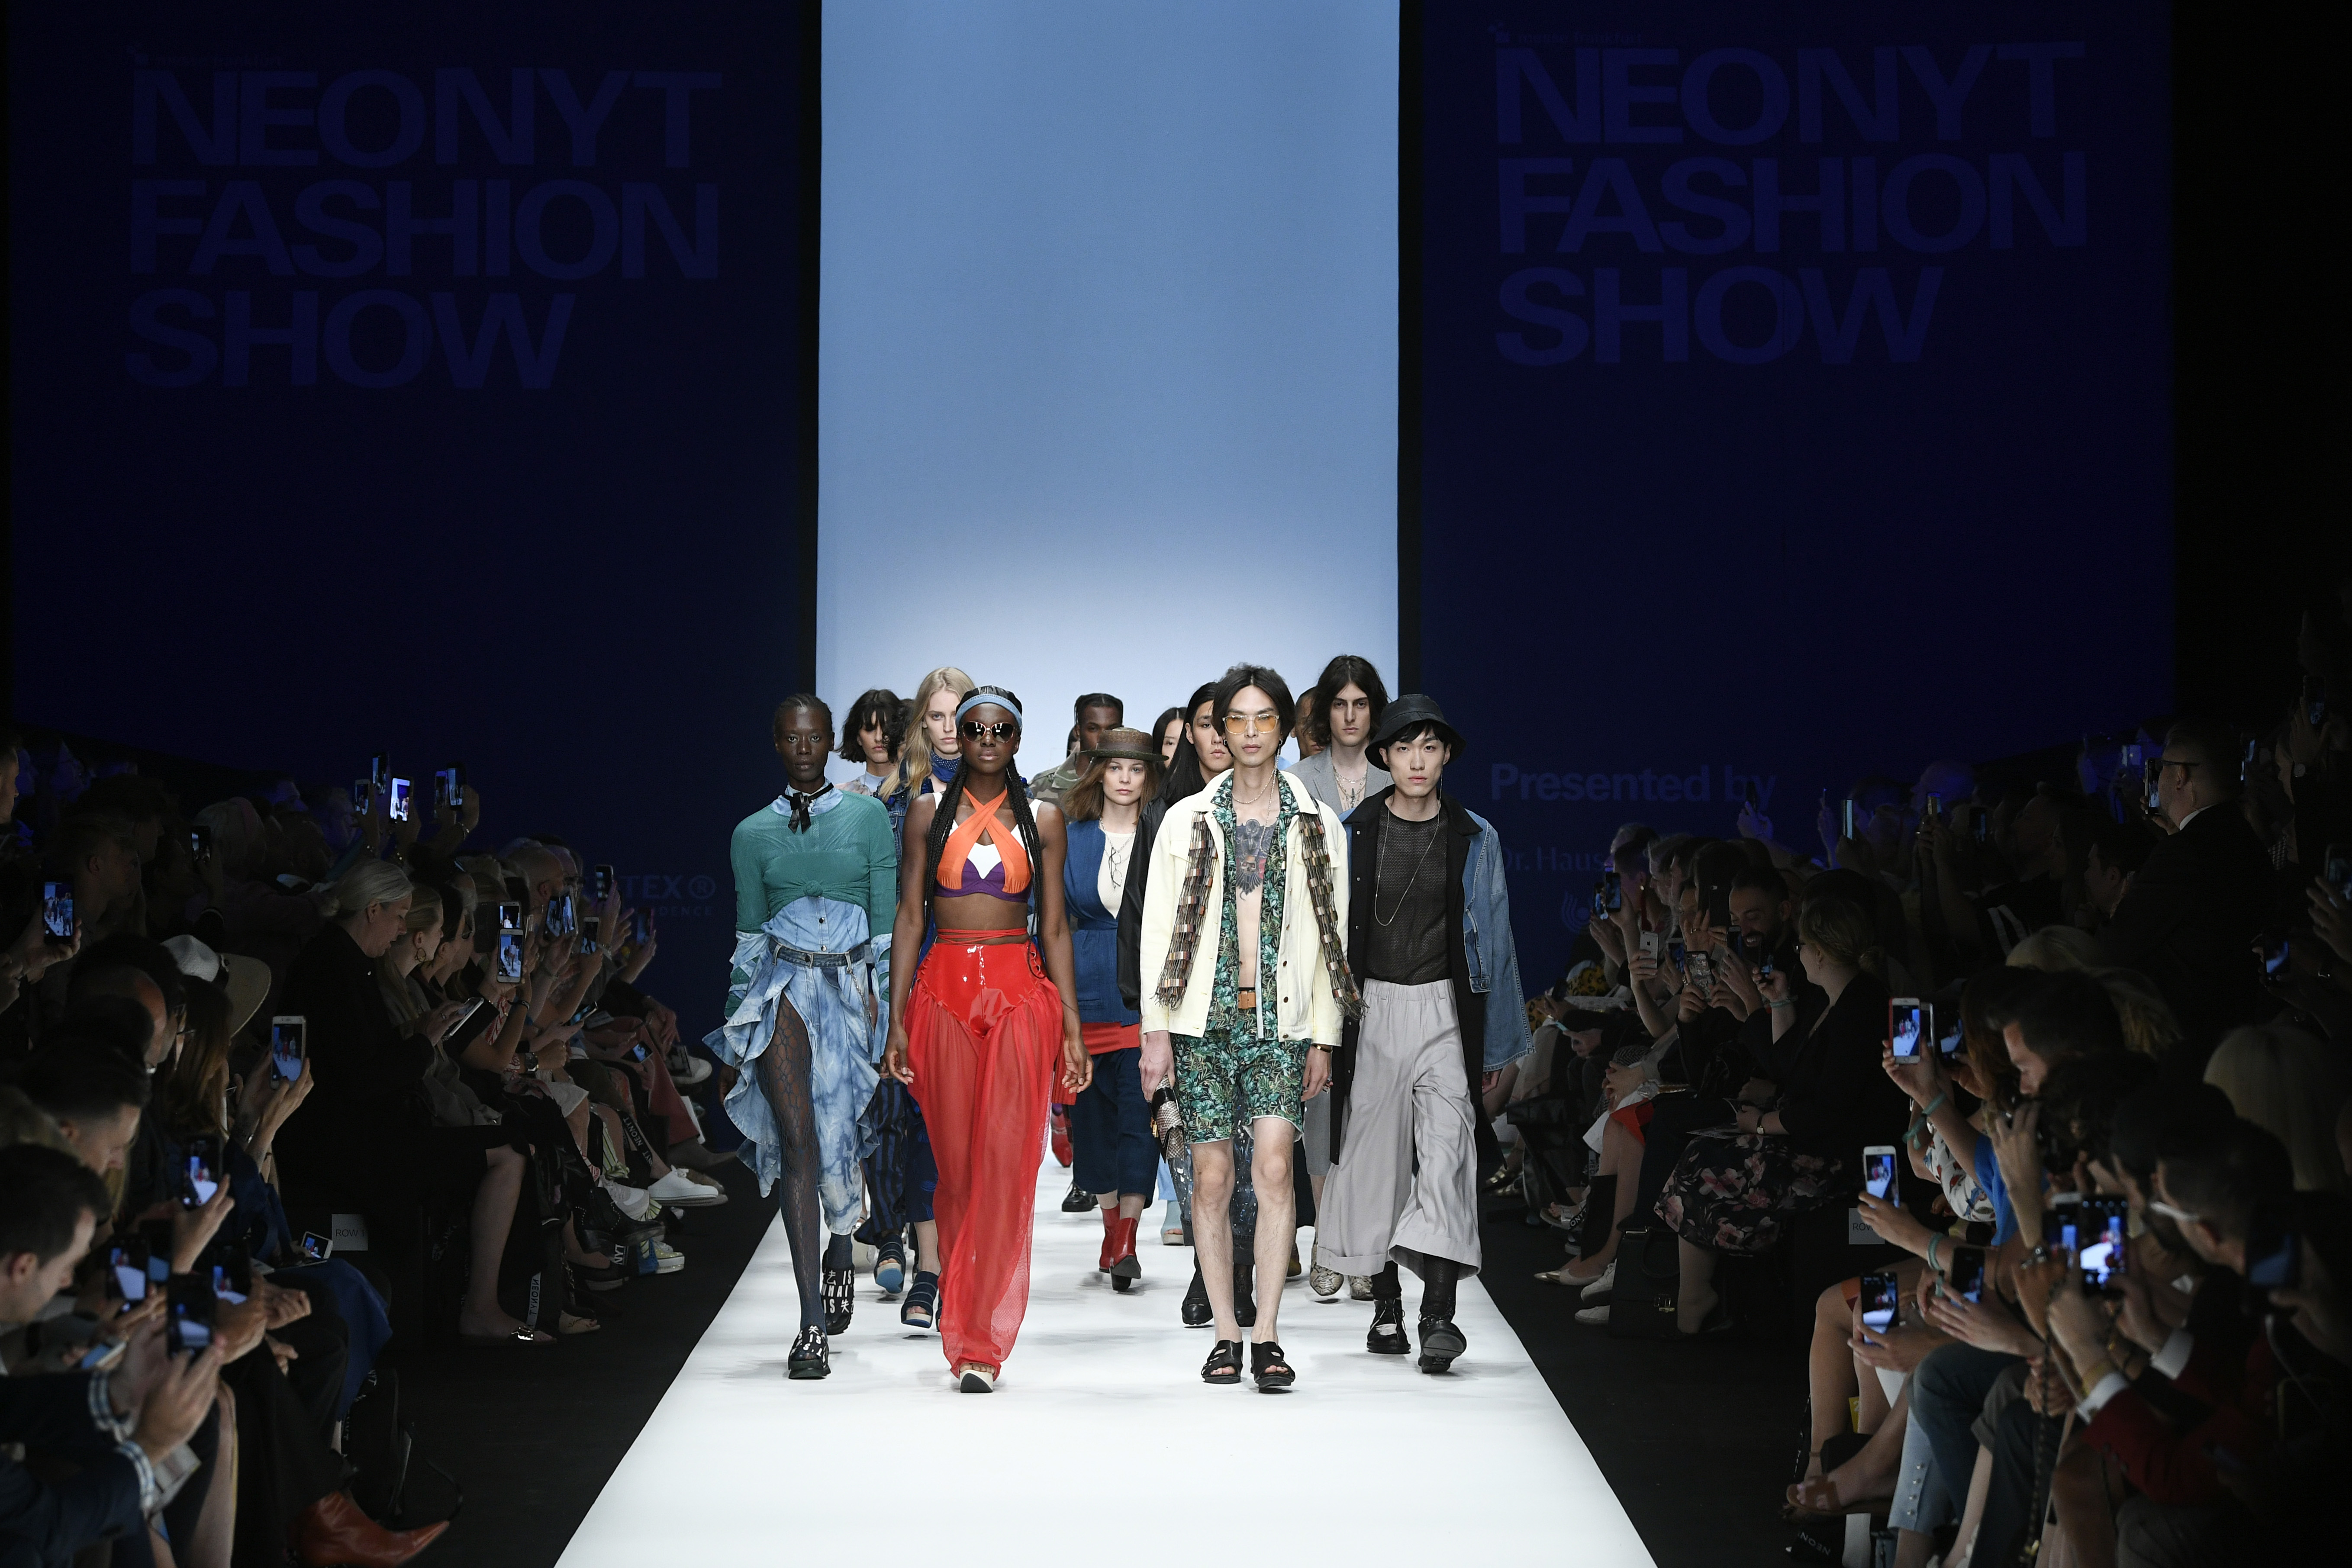 BERLIN, GERMANY - JULY 02: Models walk the runway at the NEONYT show during the Berlin Fashion Week Spring/Summer 2020 at ewerk on July 02, 2019 in Berlin, Germany. (Photo by Stefan Knauer/Getty Images for NEONYT)